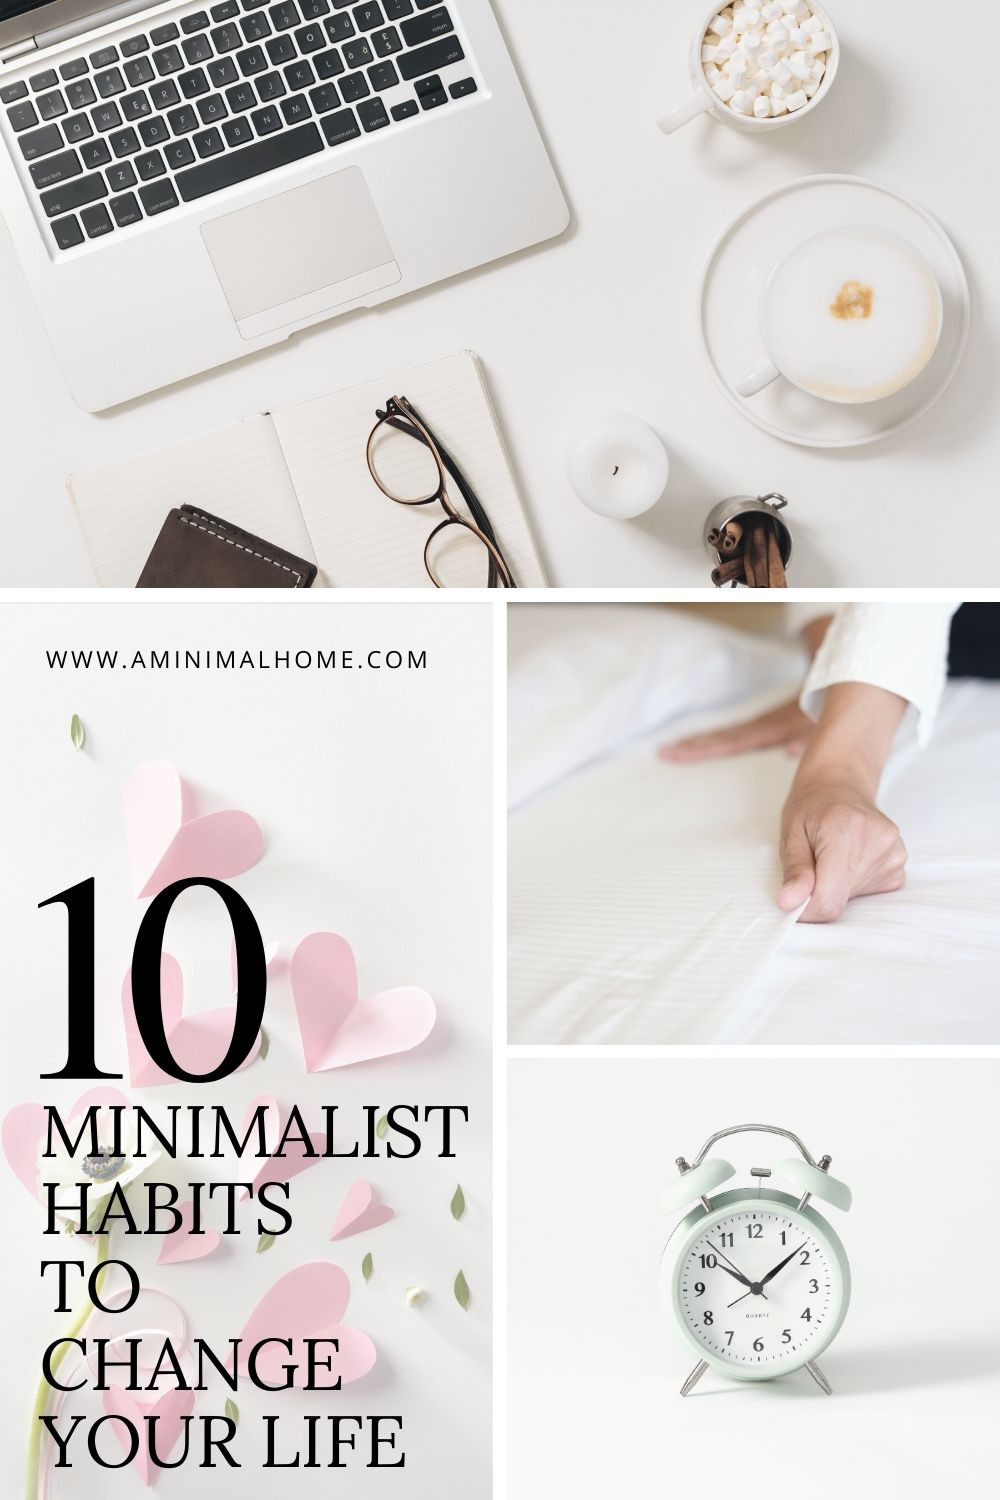 10 minimalist habits to change your life